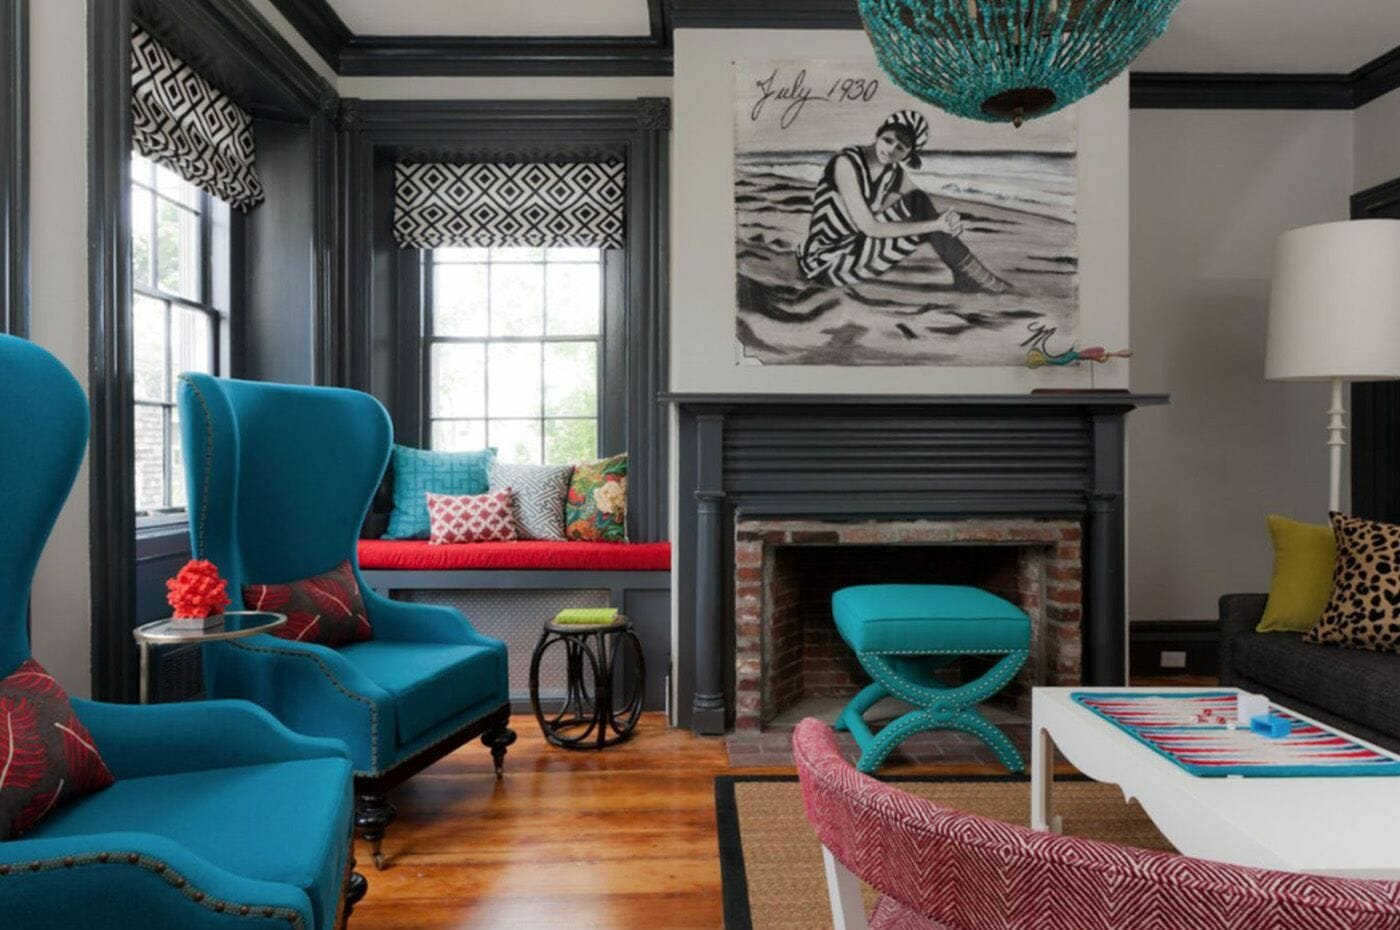 Eclectic interiors statement high back chairs